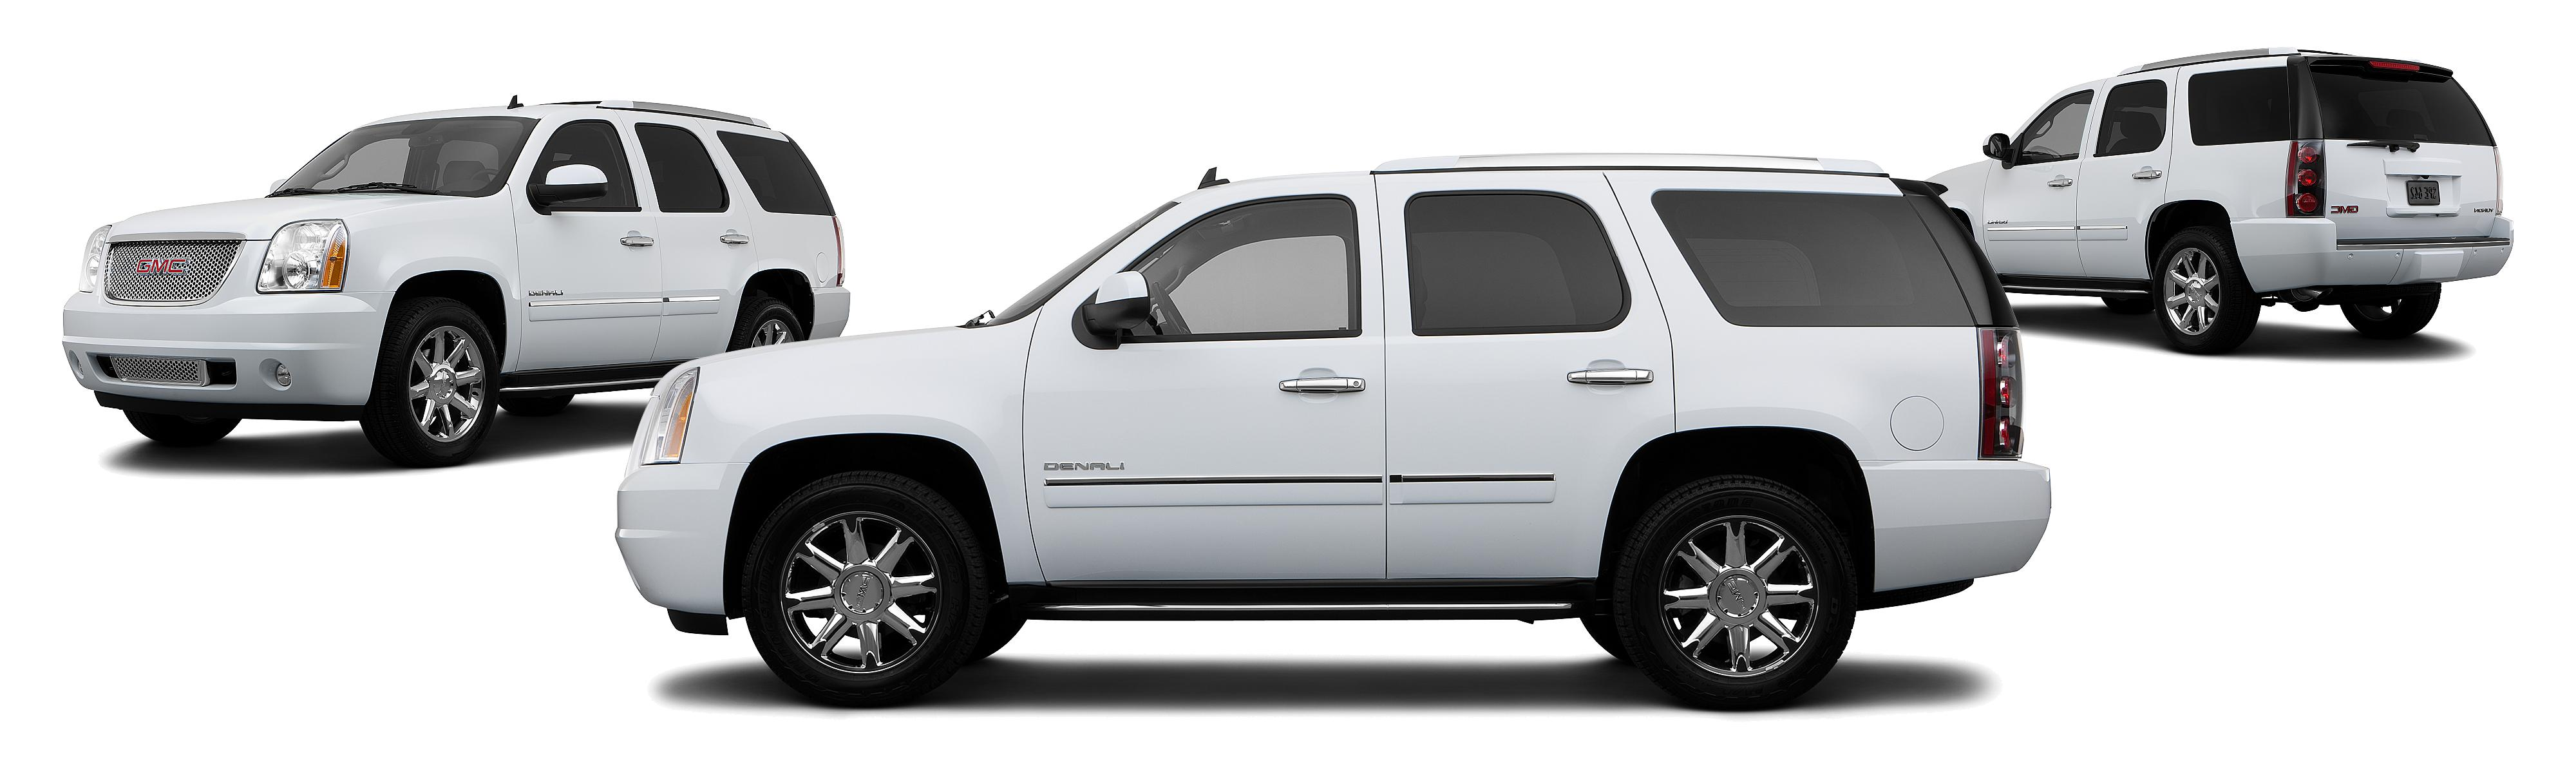 image best denali new gmc for united price yukon cars